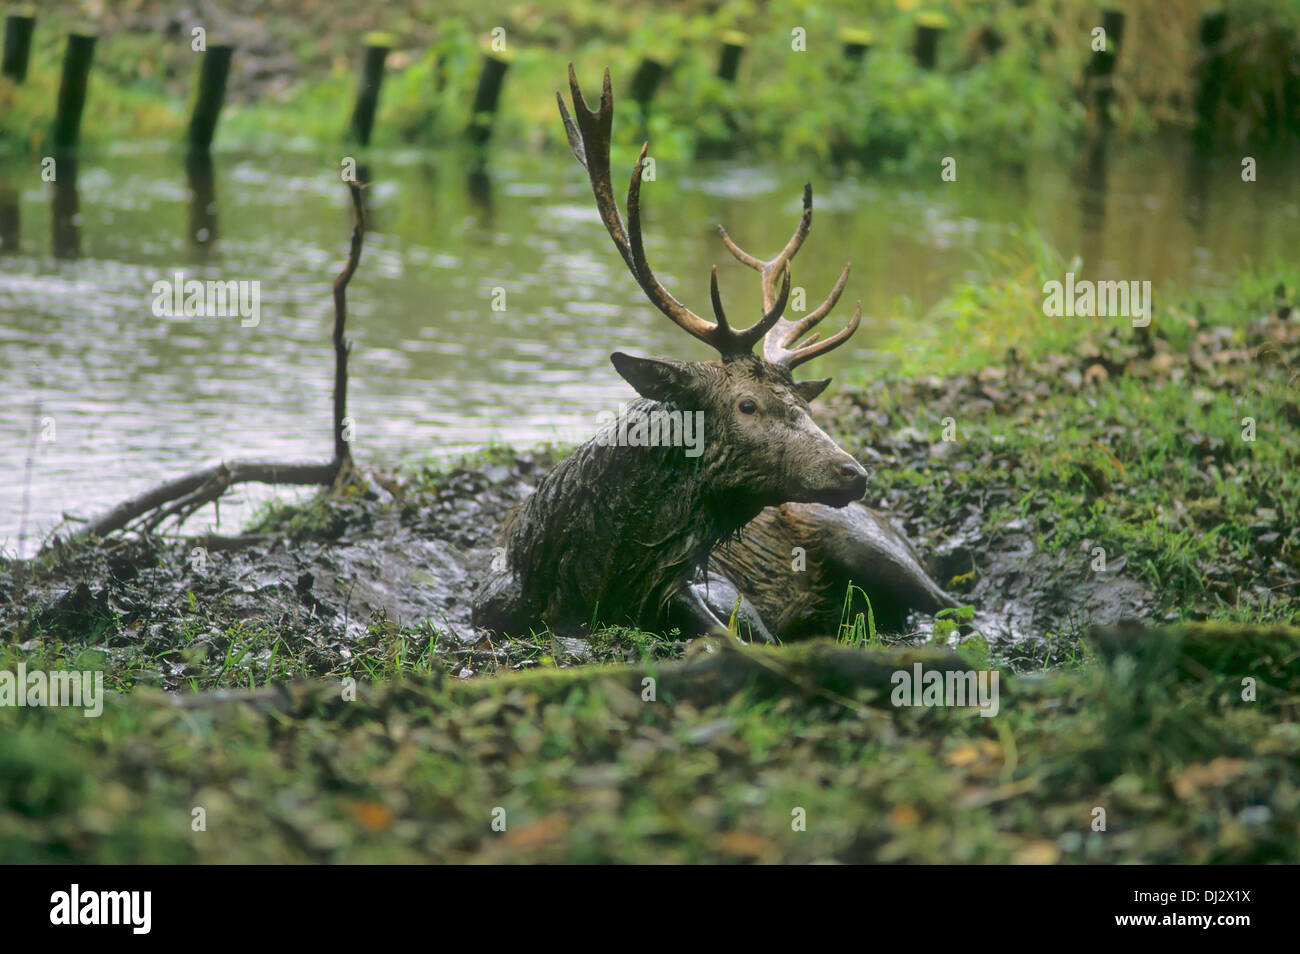 red deer (Cervus elaphus) in the wallow, Rothirsch in der Suhle, Rothirsch (Cervus elaphus) - Stock Image